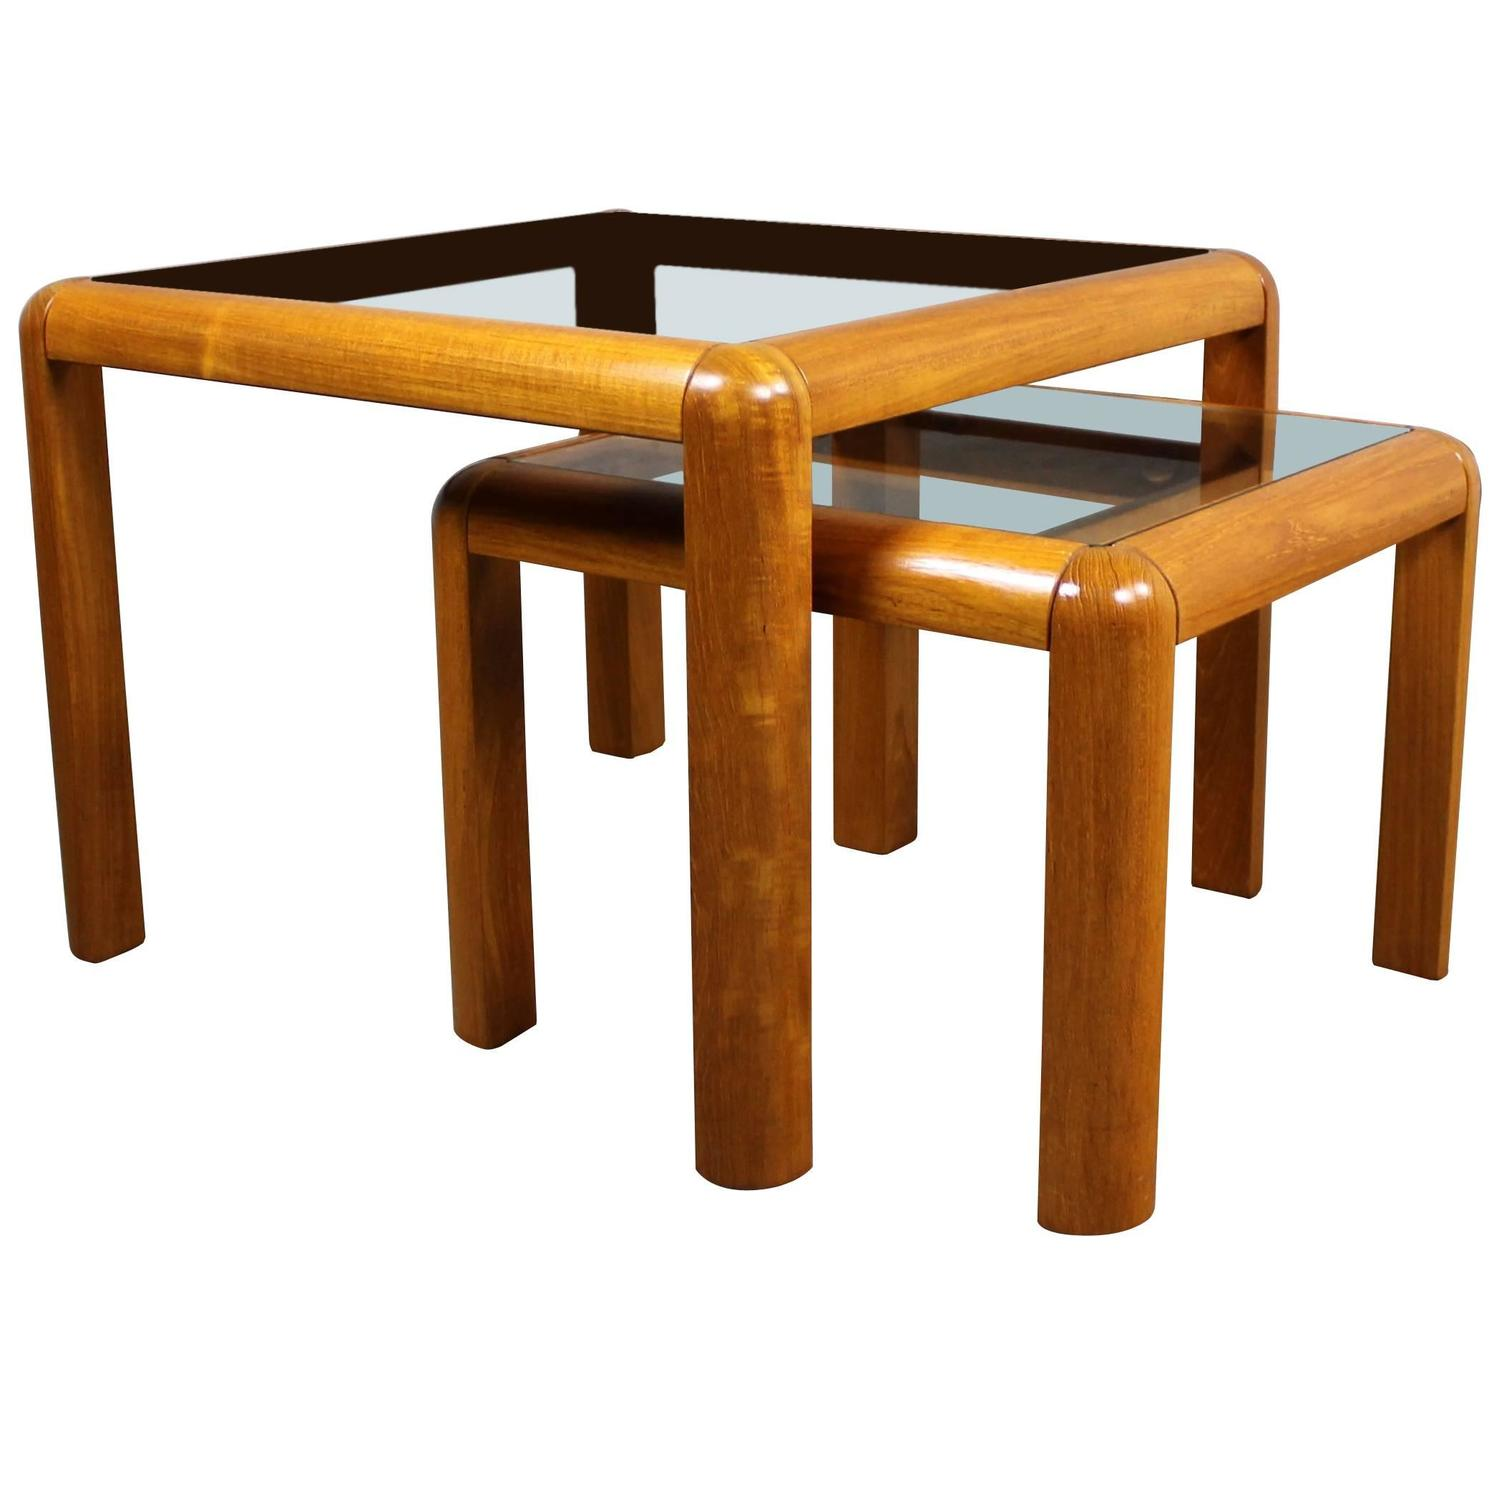 Superbe Vintage Danish Mid Century Modern Teak And Glass Square Nesting Side Tables  At 1stdibs